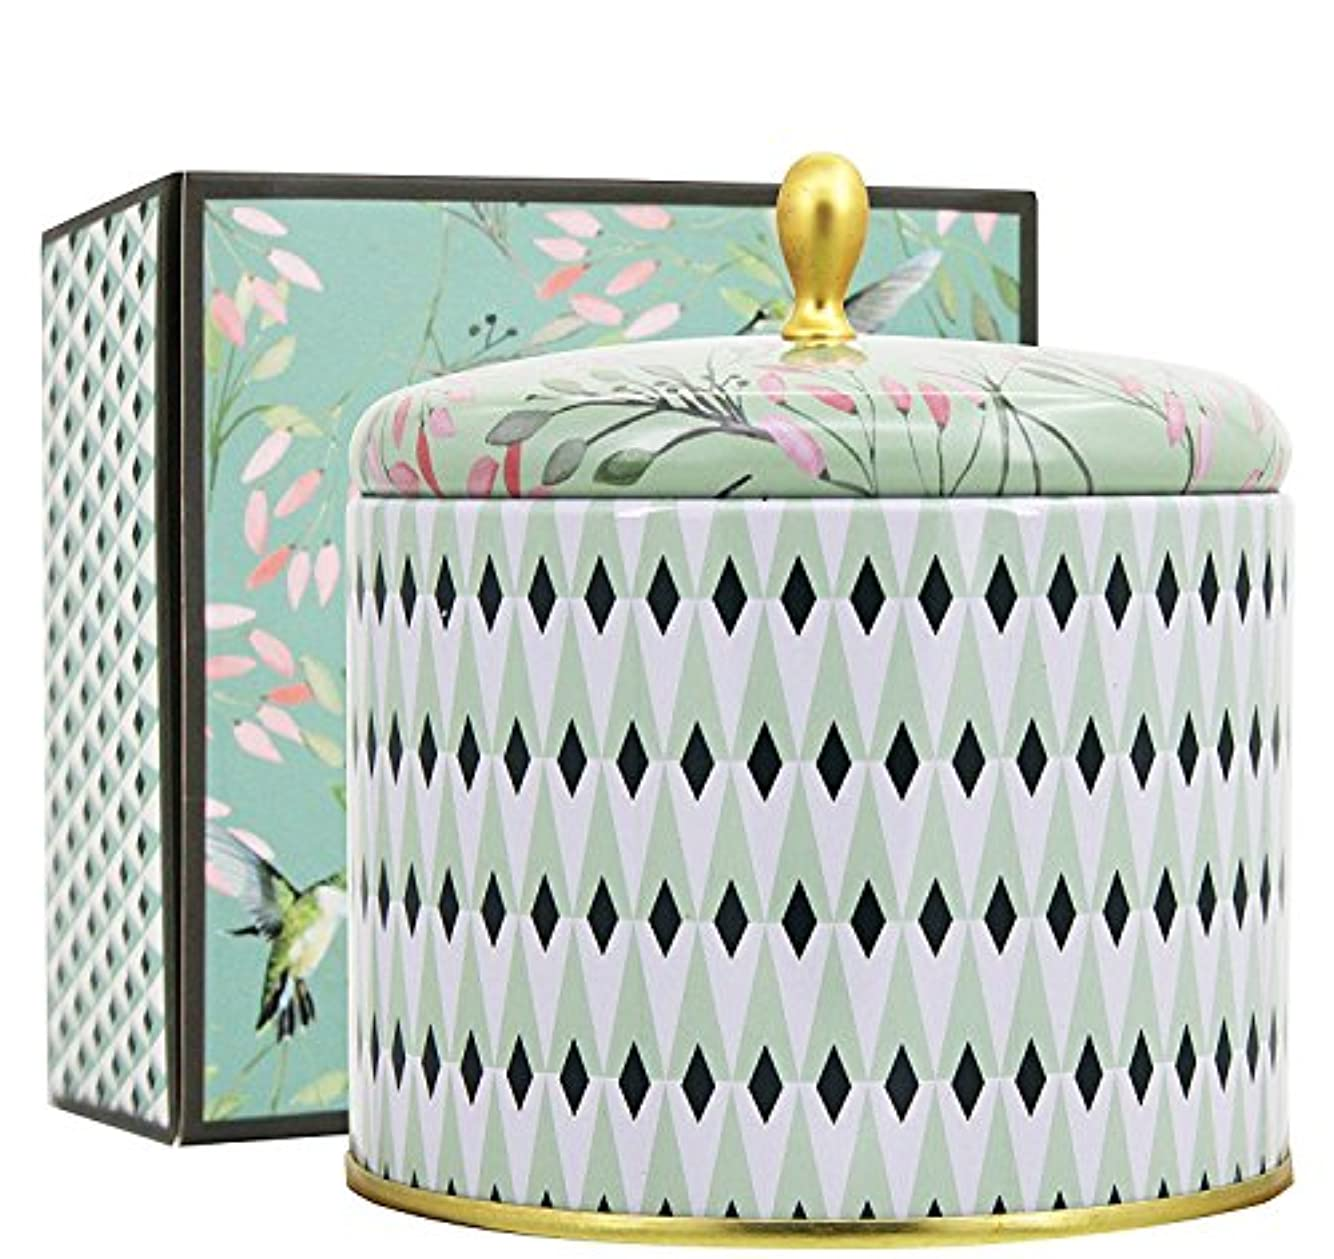 累積投資サバント(White Tea Candle) - Scented Candles 410ml White Tea Large Tin Aromatherapy Candle 2 Wicks Natural Wax, Valentine's...